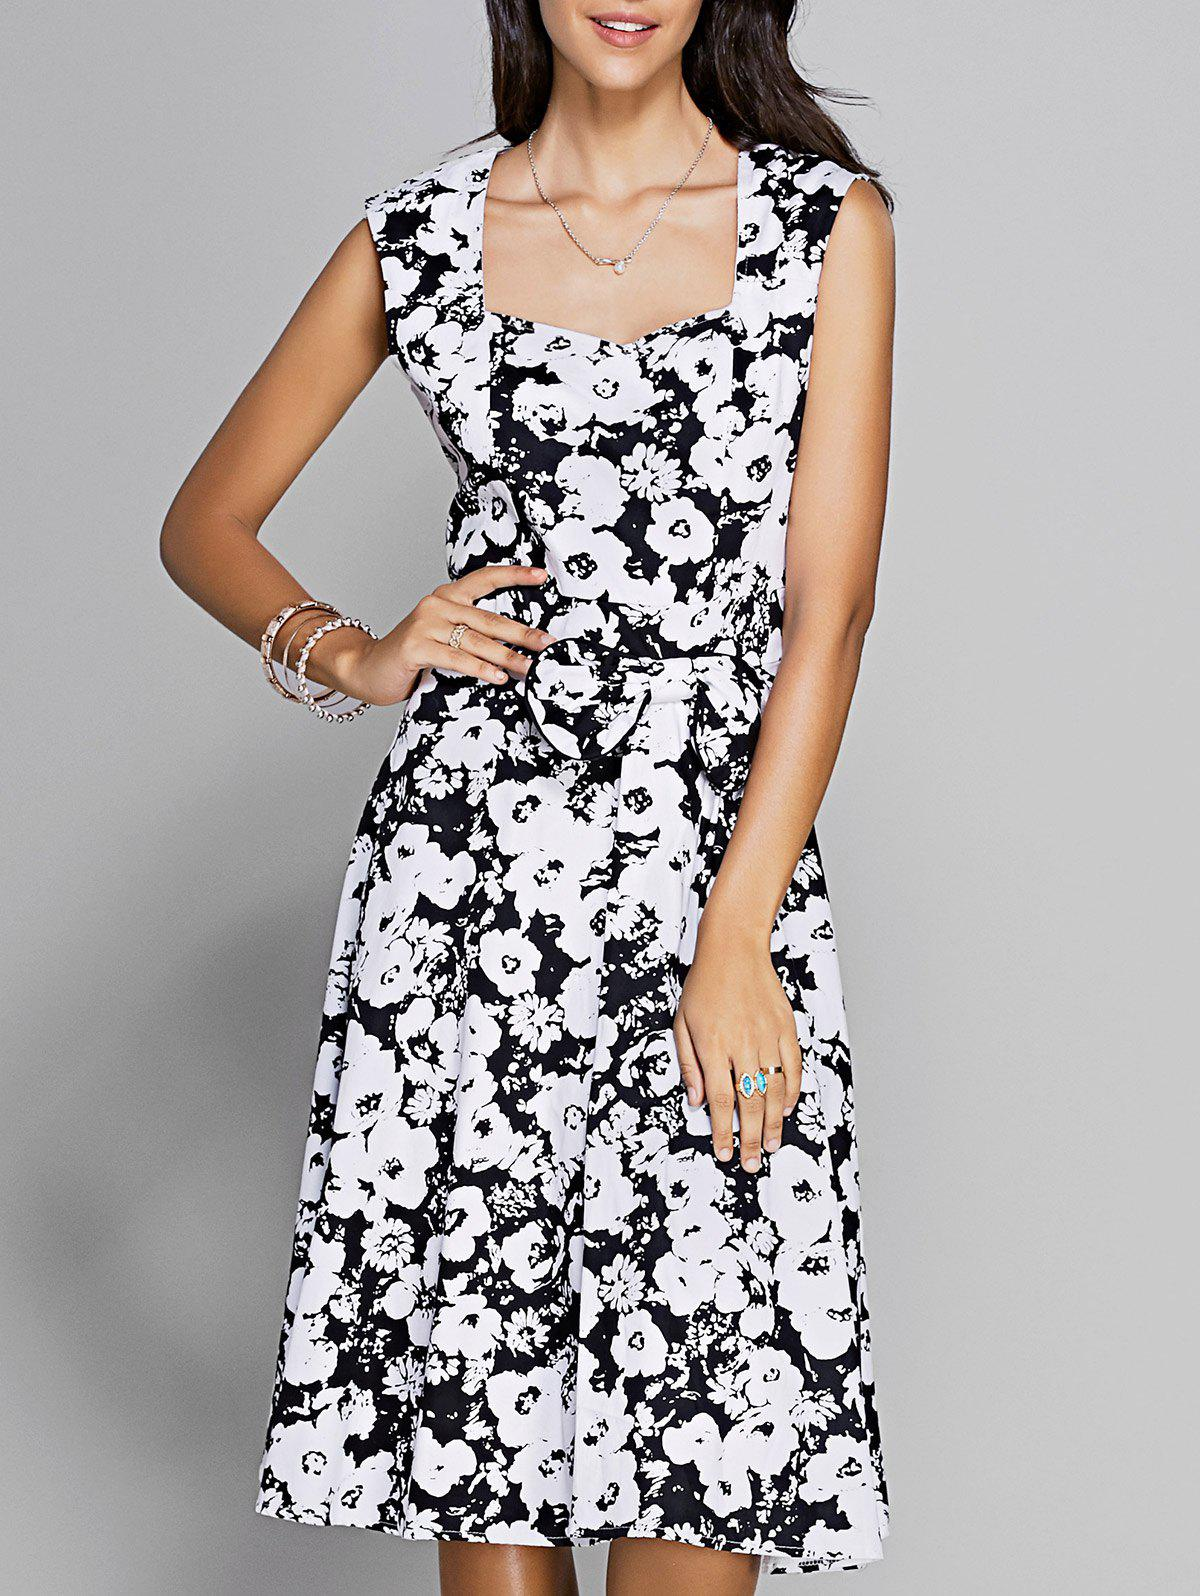 Vintage Women's Floral Print Sleeveless Sweetheart Neck Dress - BLACK S